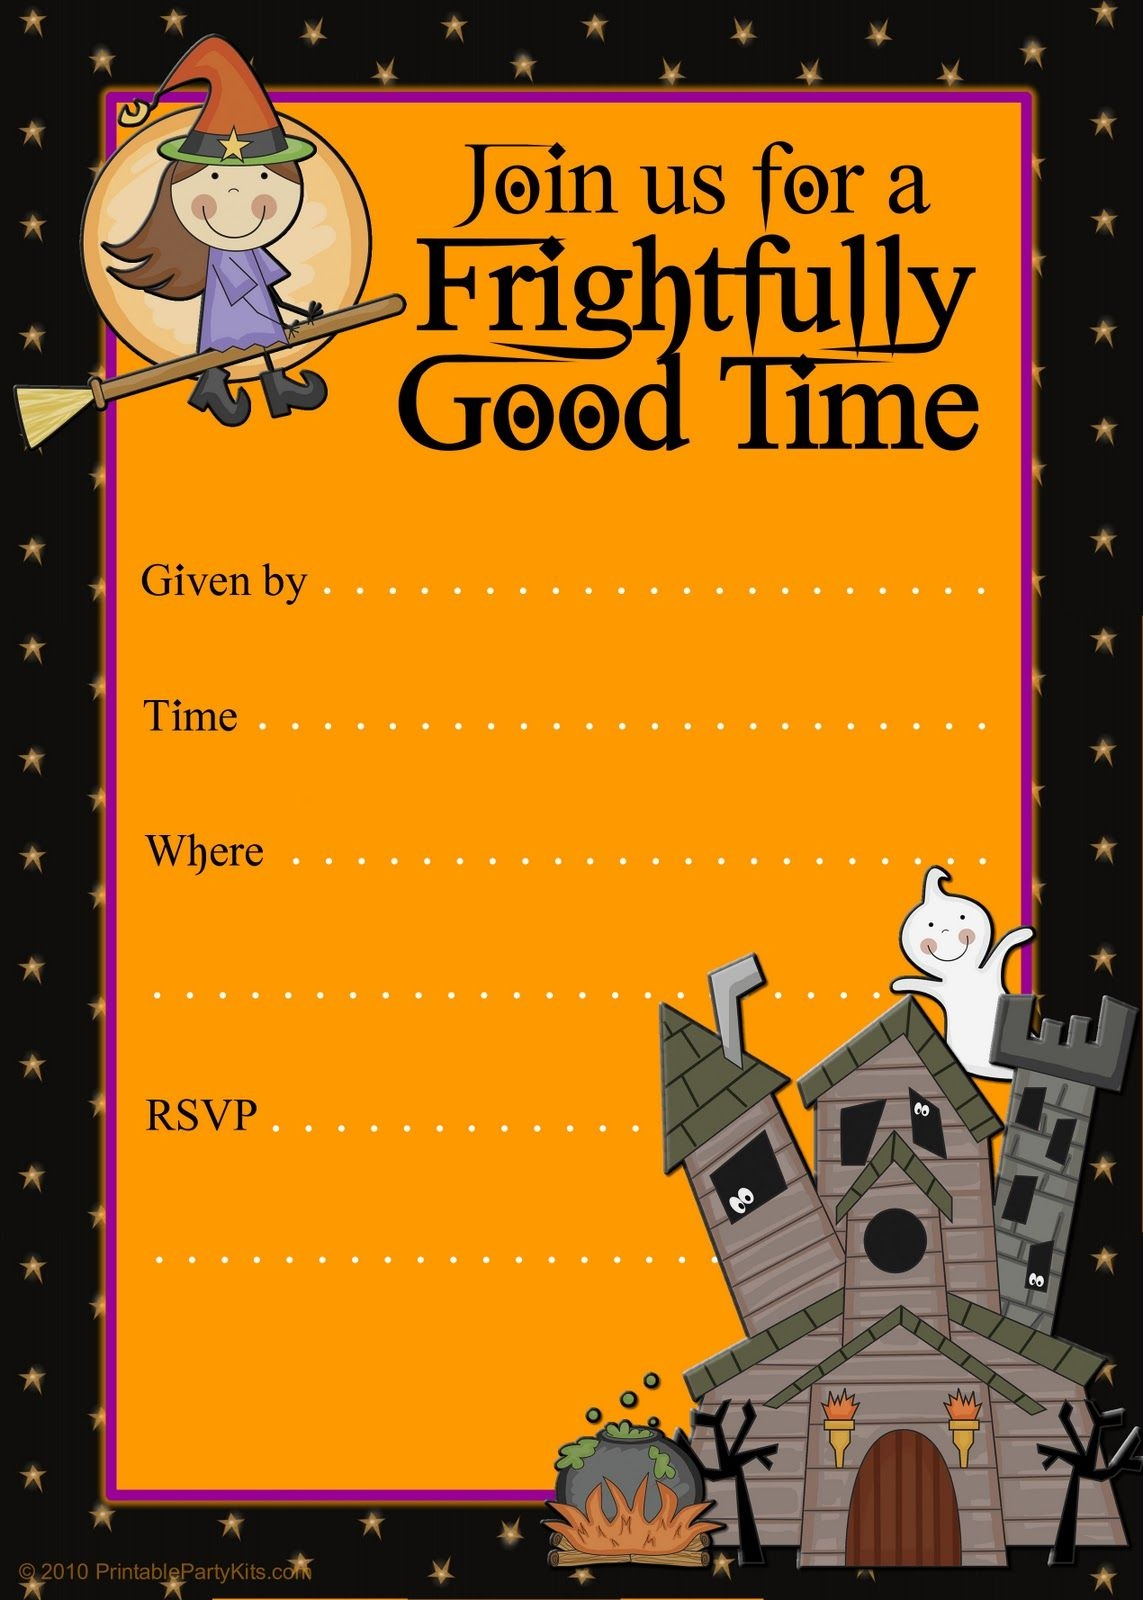 Halloween Party Invitations | Halloween Party Invitation Templates - Halloween Party Invitation Templates Free Printable